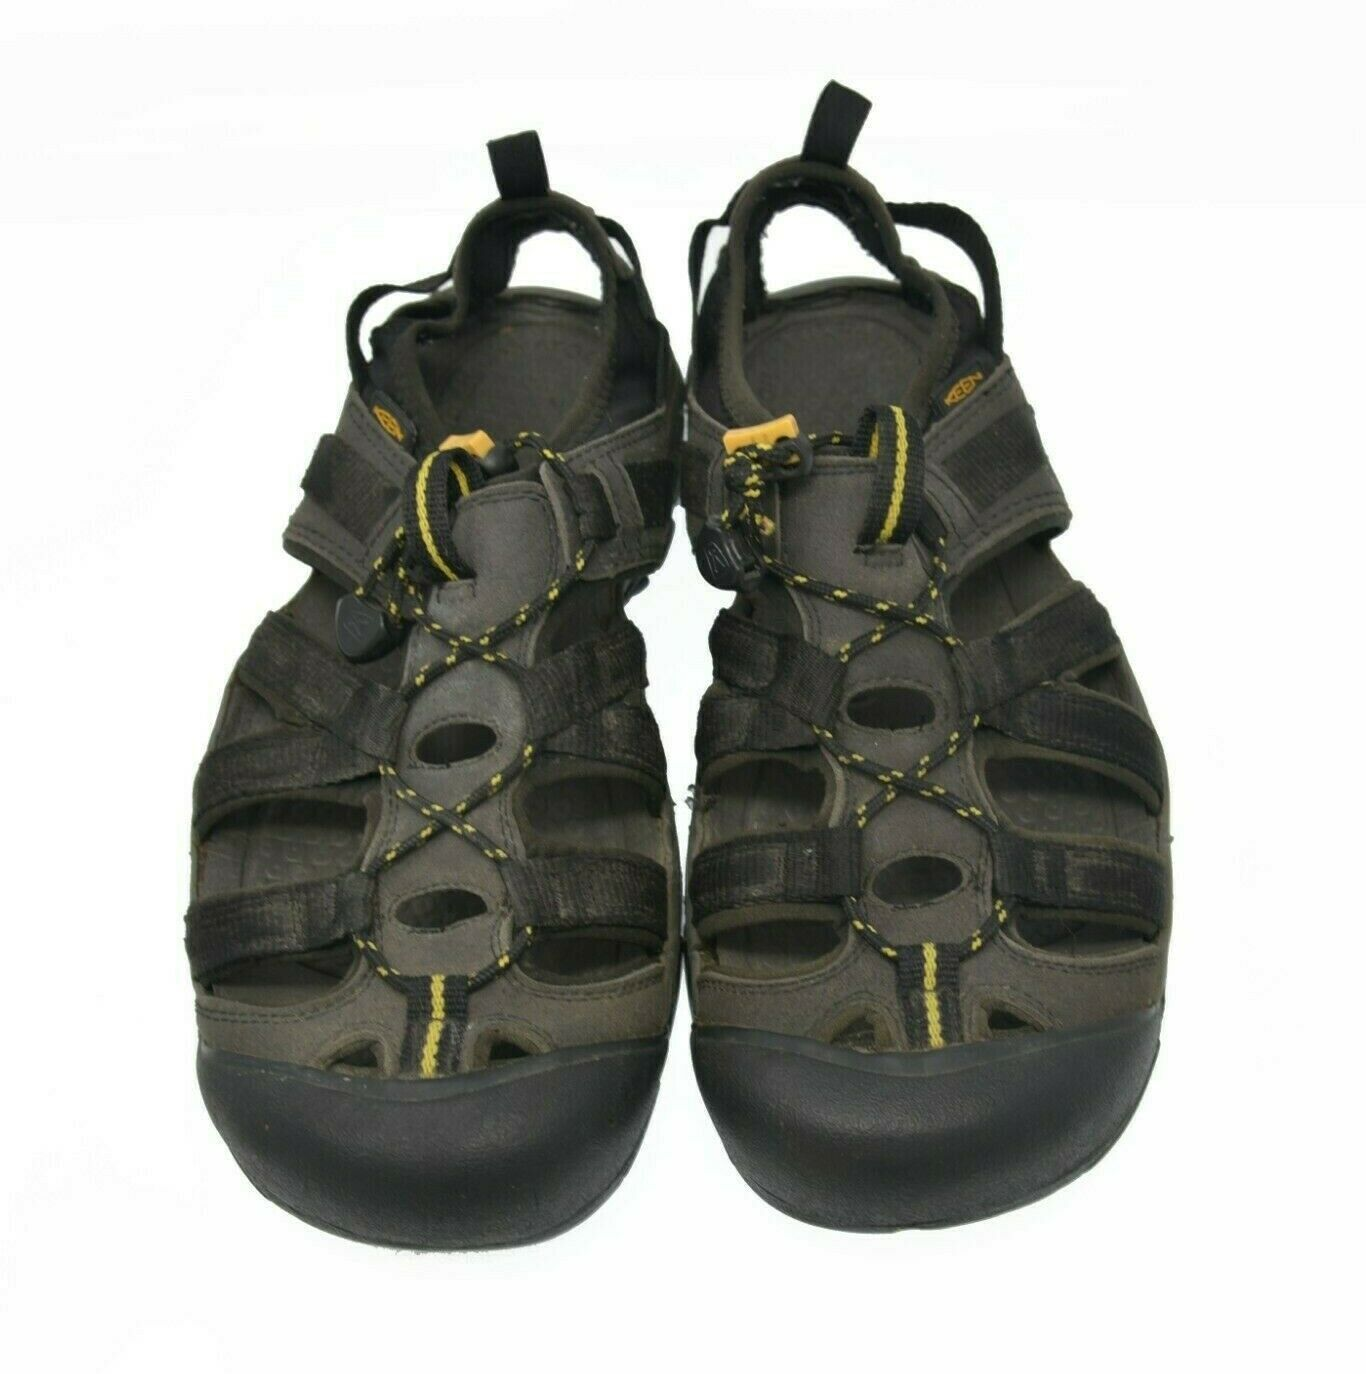 KEEN Men's Sz 9.5 Sports Water Ready Bungee Strap Hiking Sandals